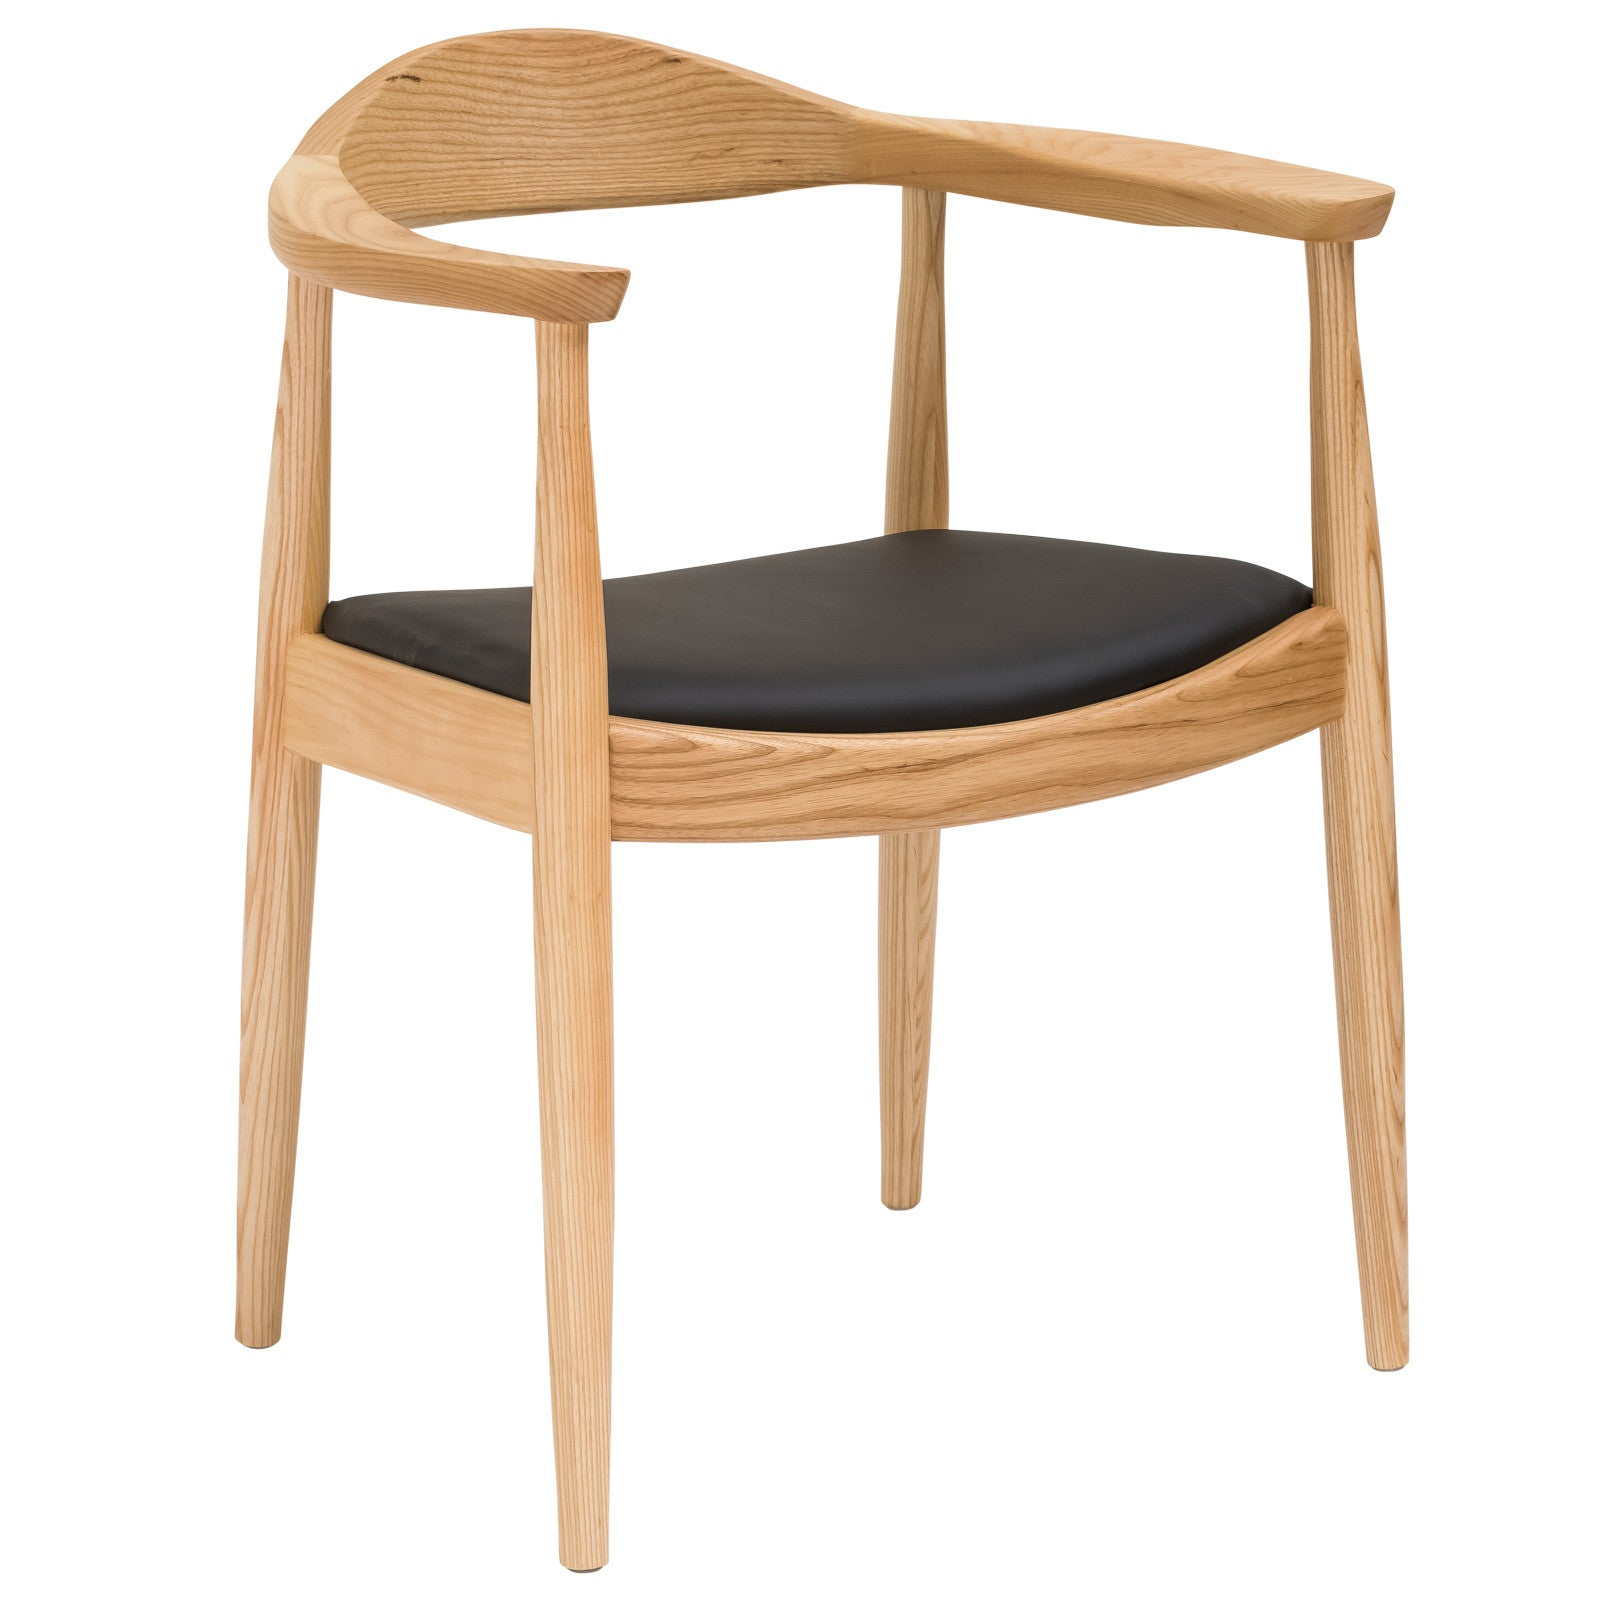 ... Hans Wegner Round Chair Reproduction   The Modern Source   10